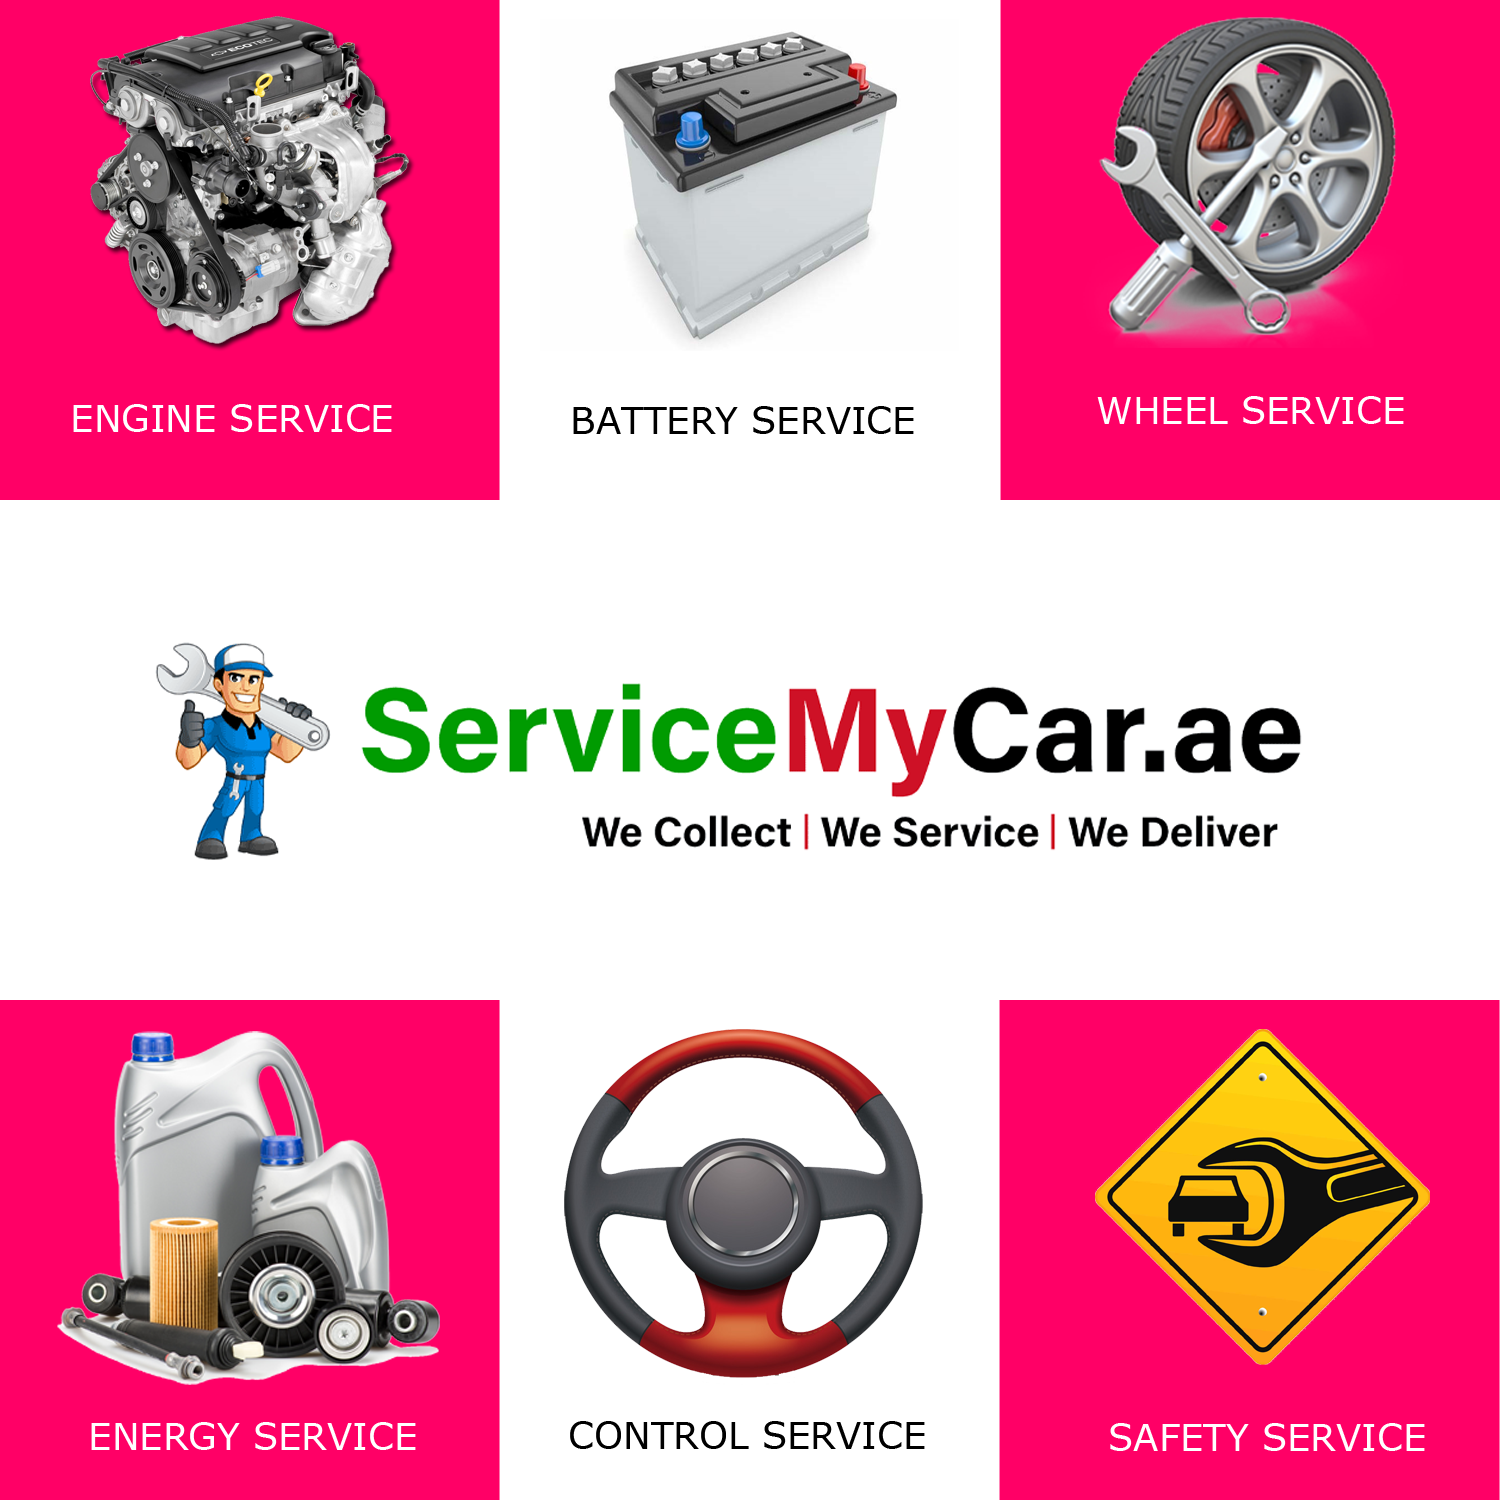 Get A Complete Car Interior And Exterior Service At Servicemycar Ae It Is An Amazing Platform For Car Repair And Mai Repair And Maintenance Car Sharing Repair